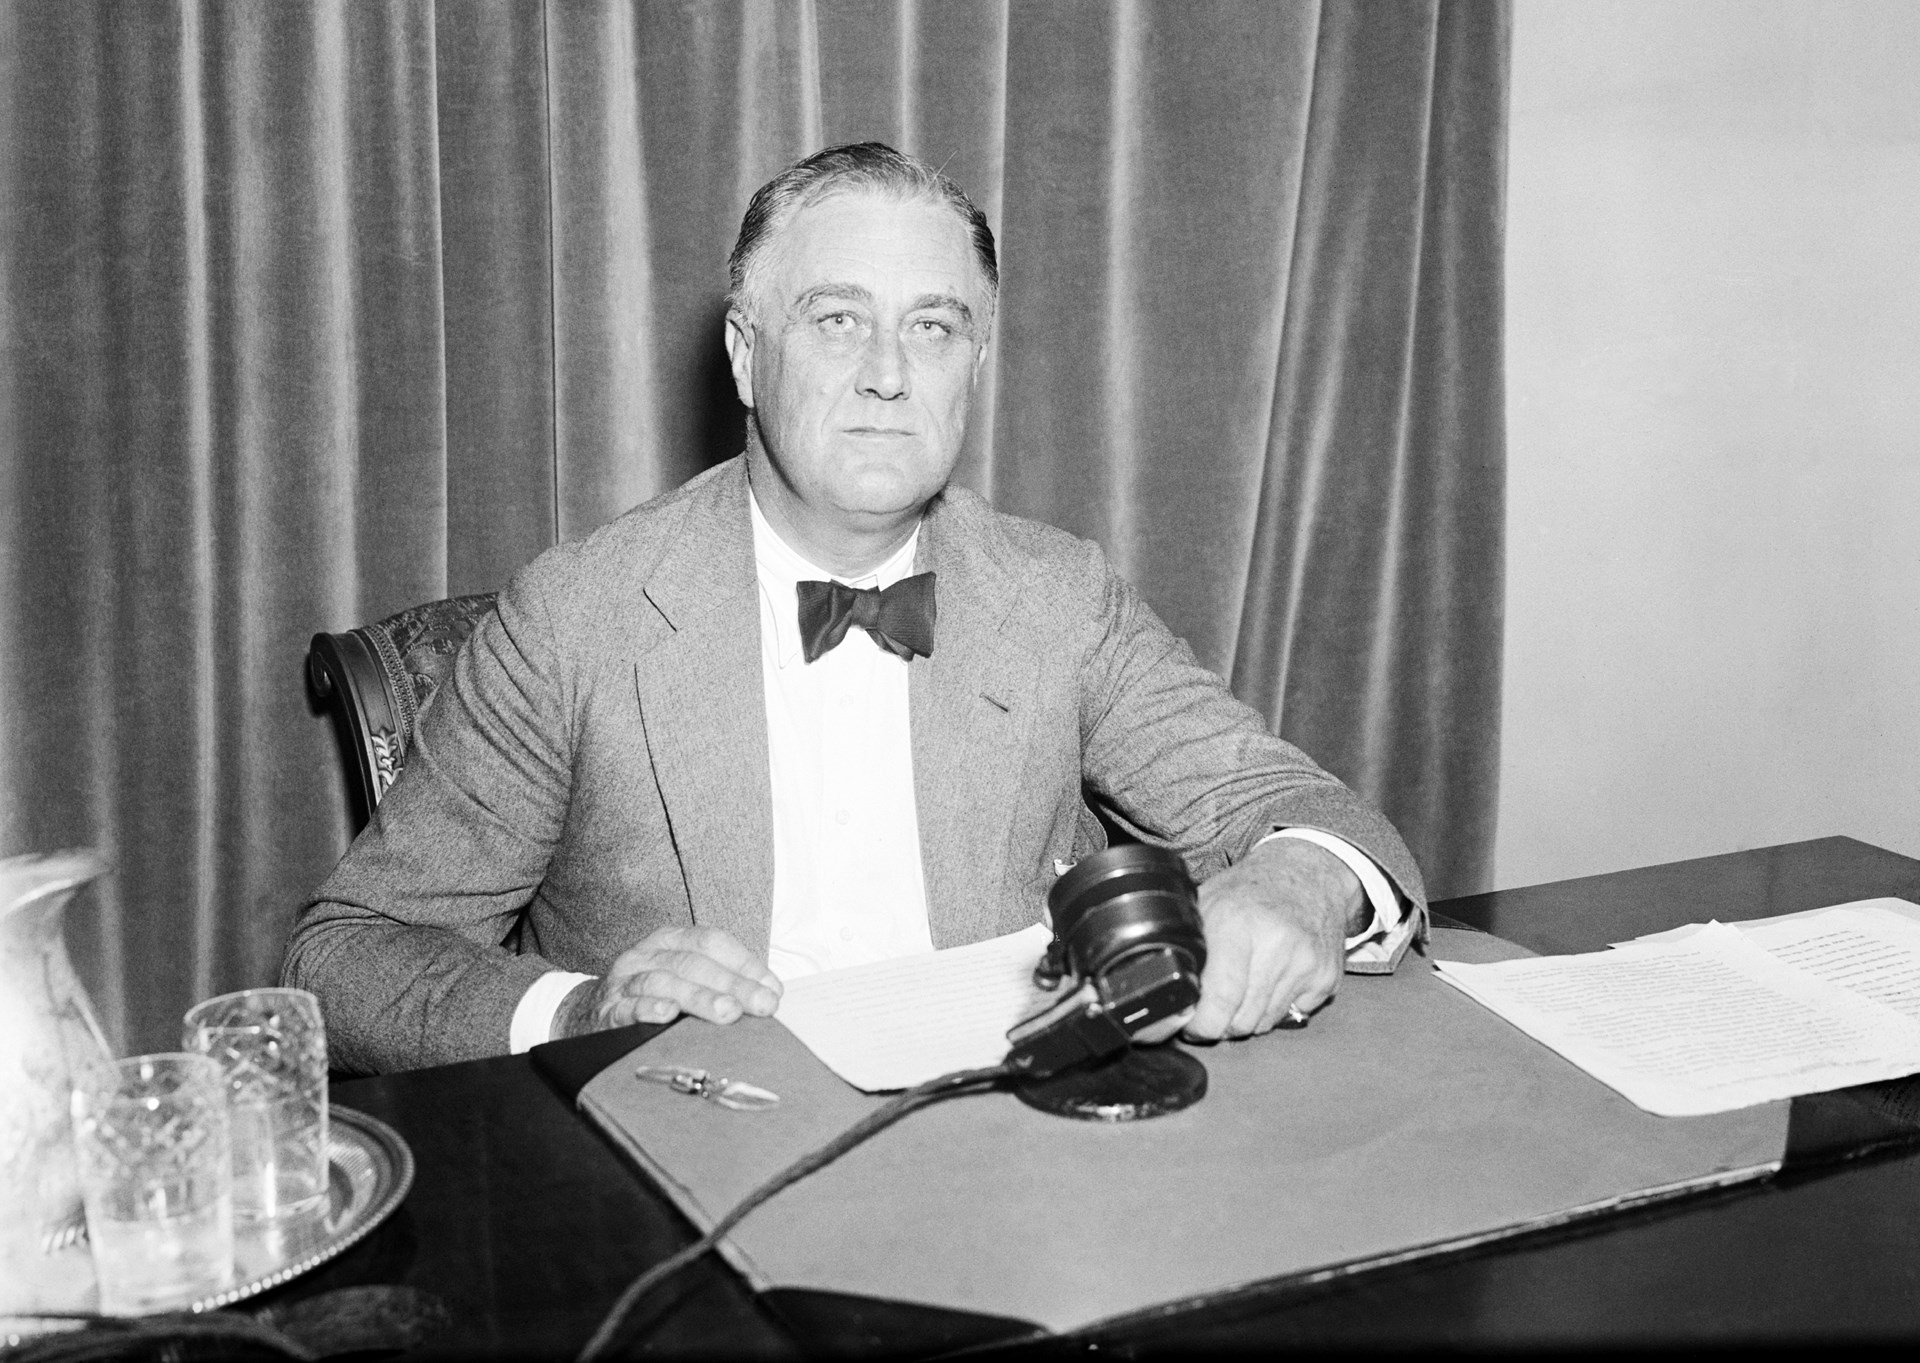 FDR proposed the idea of the United Nations